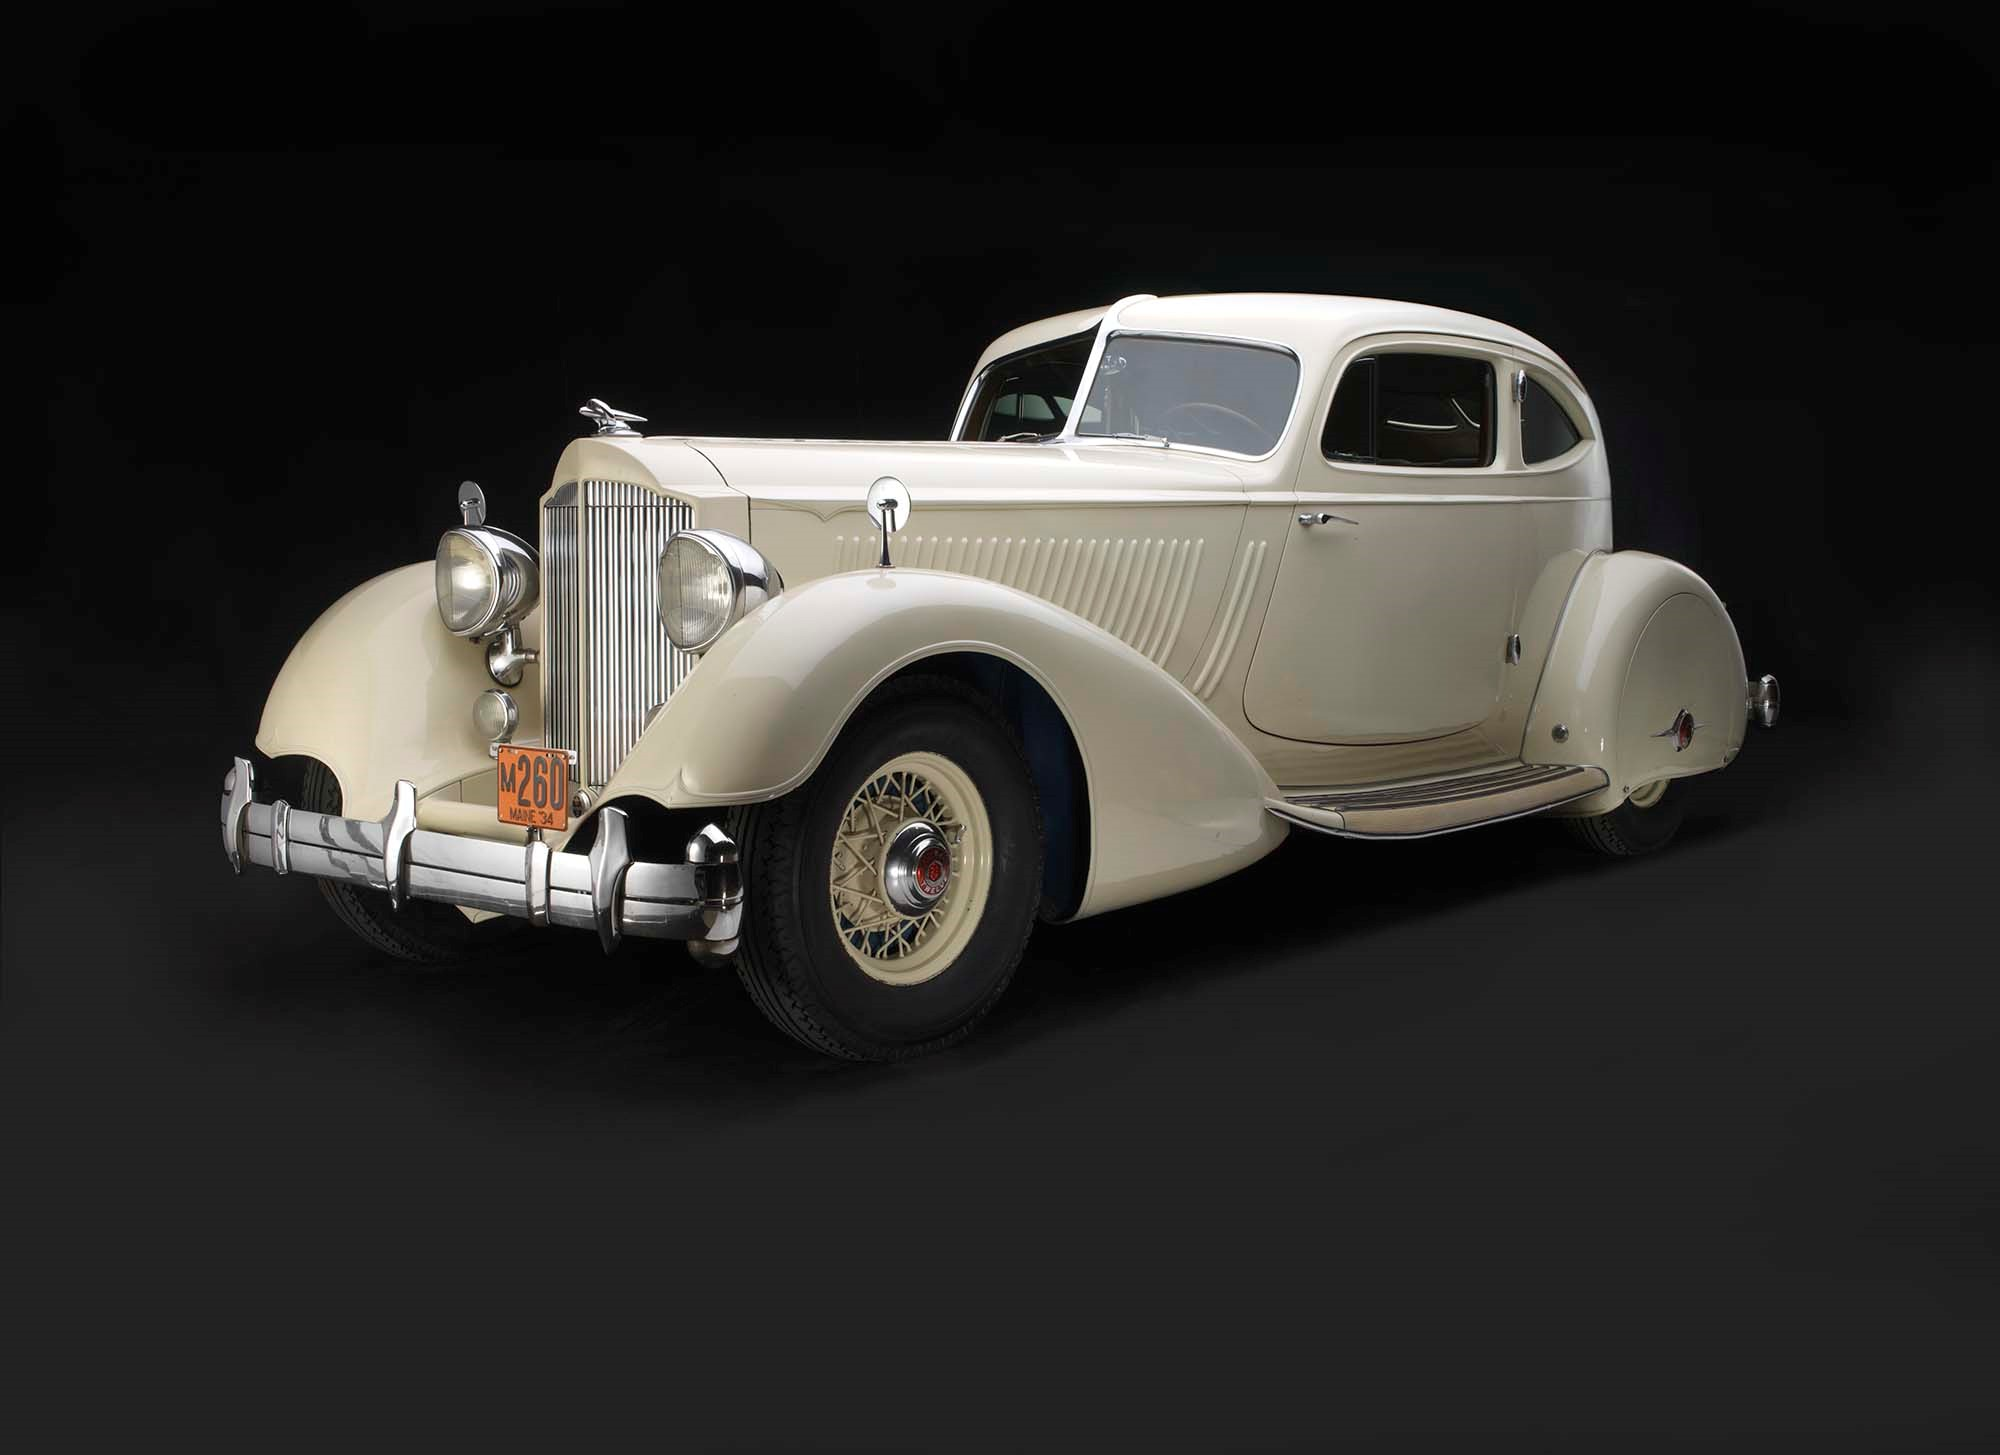 Sculpted In Steel Art Deco Automobiles And Motorcycles 19291940